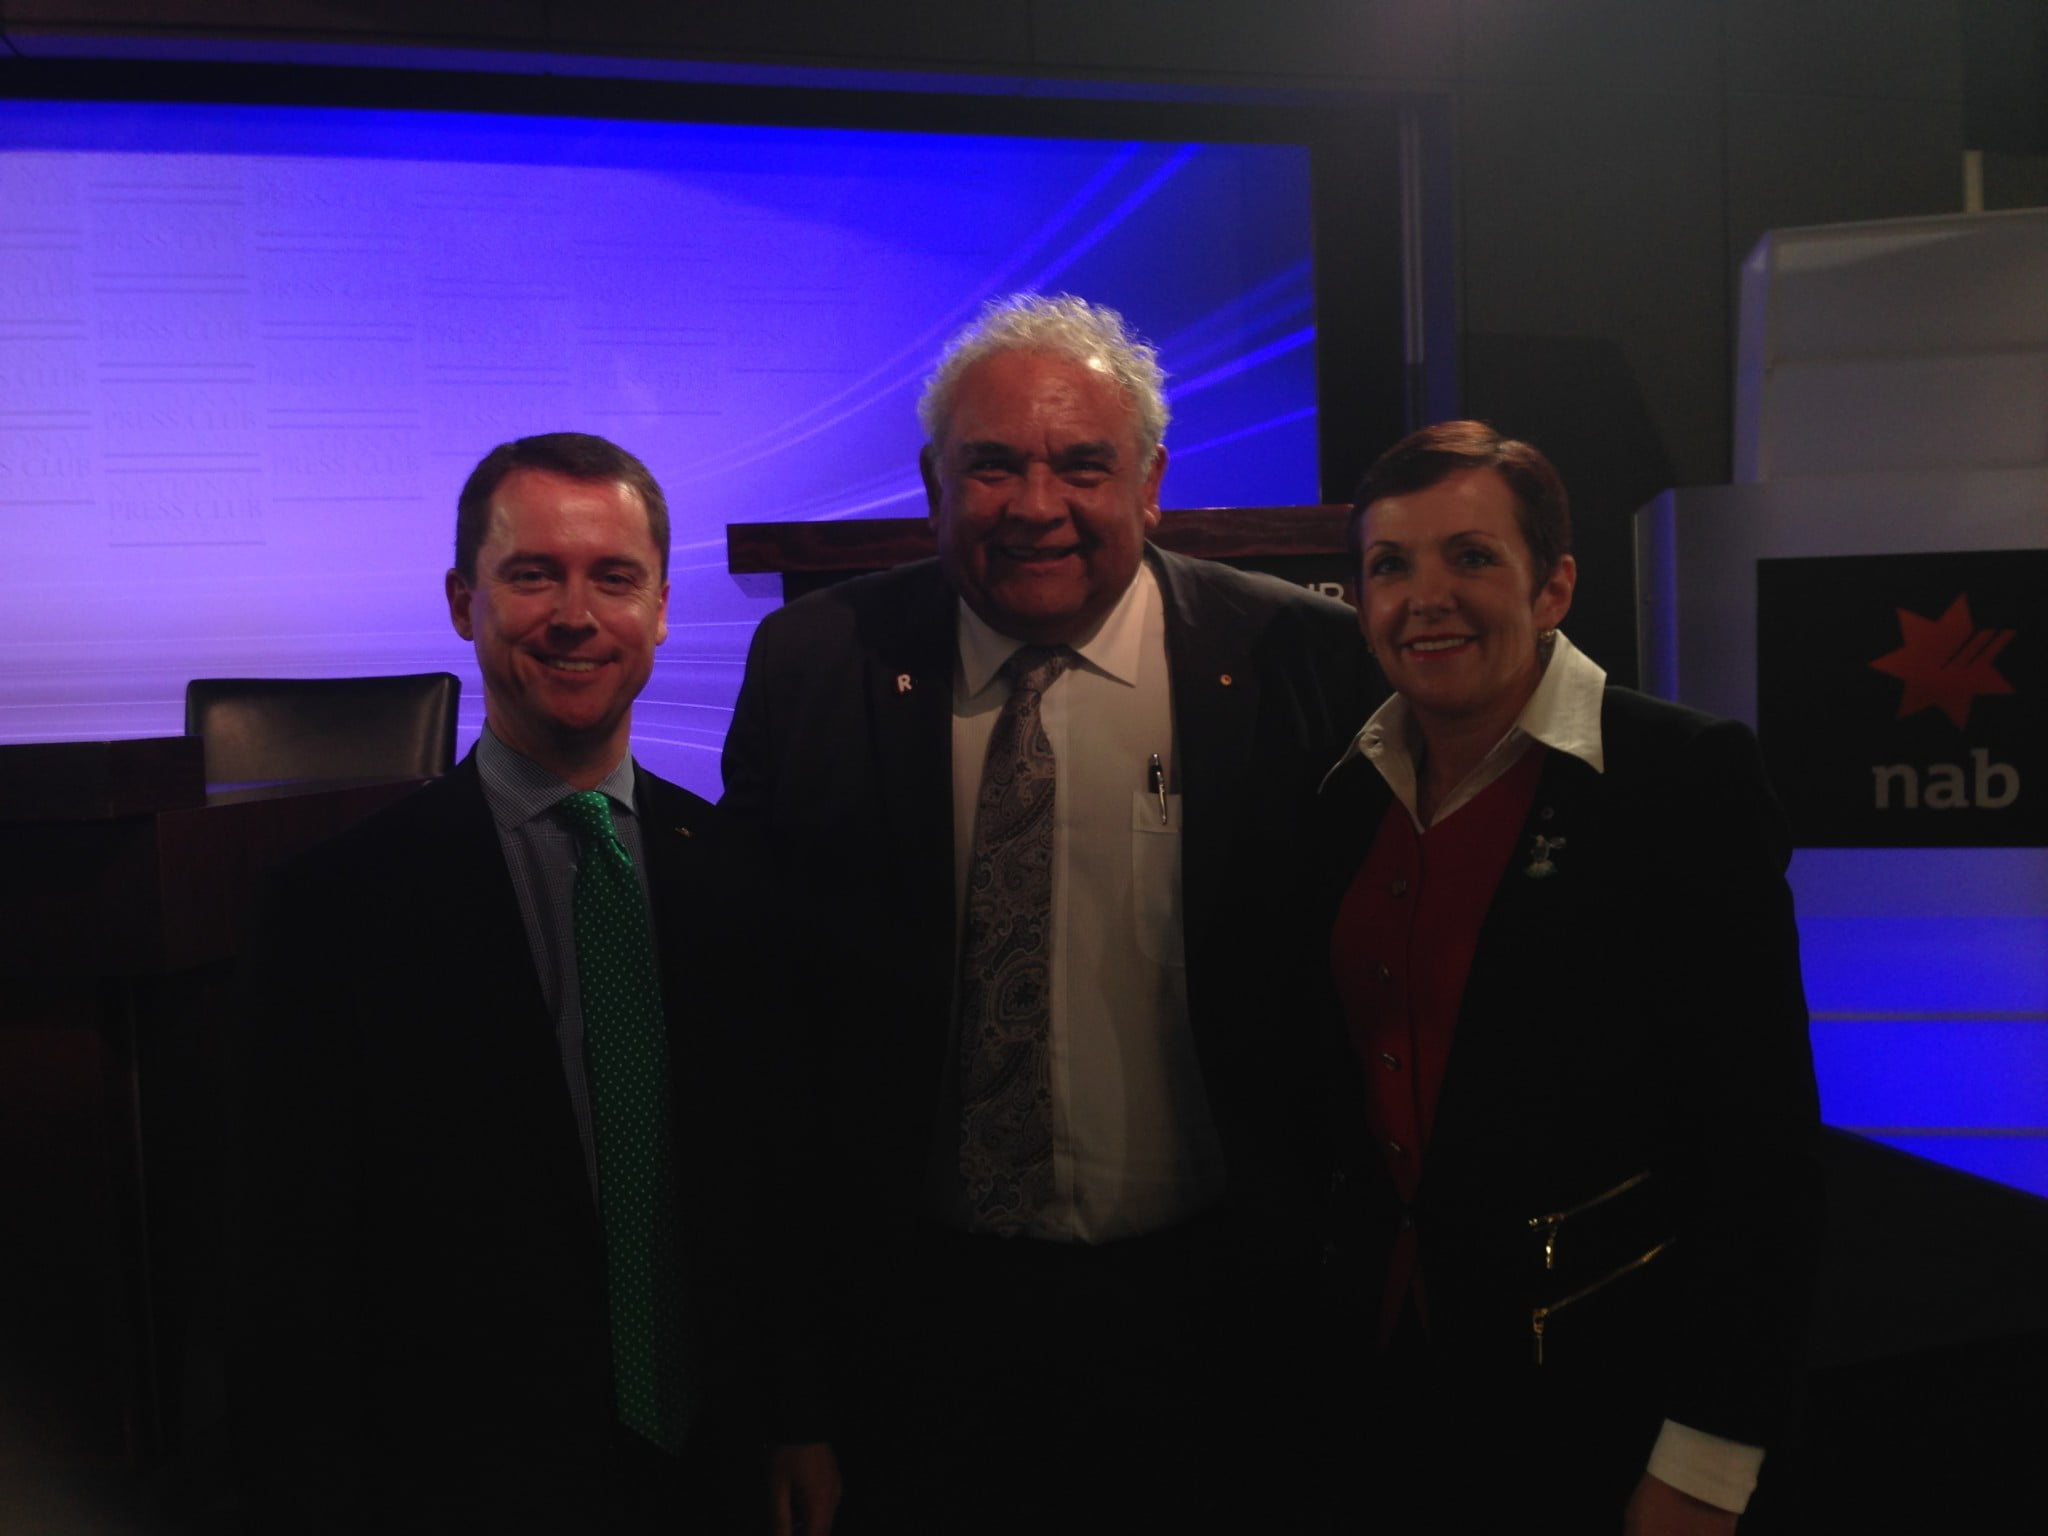 Kate Carnell with Martin Laverty and Dr Tom Calma at a 2014 event